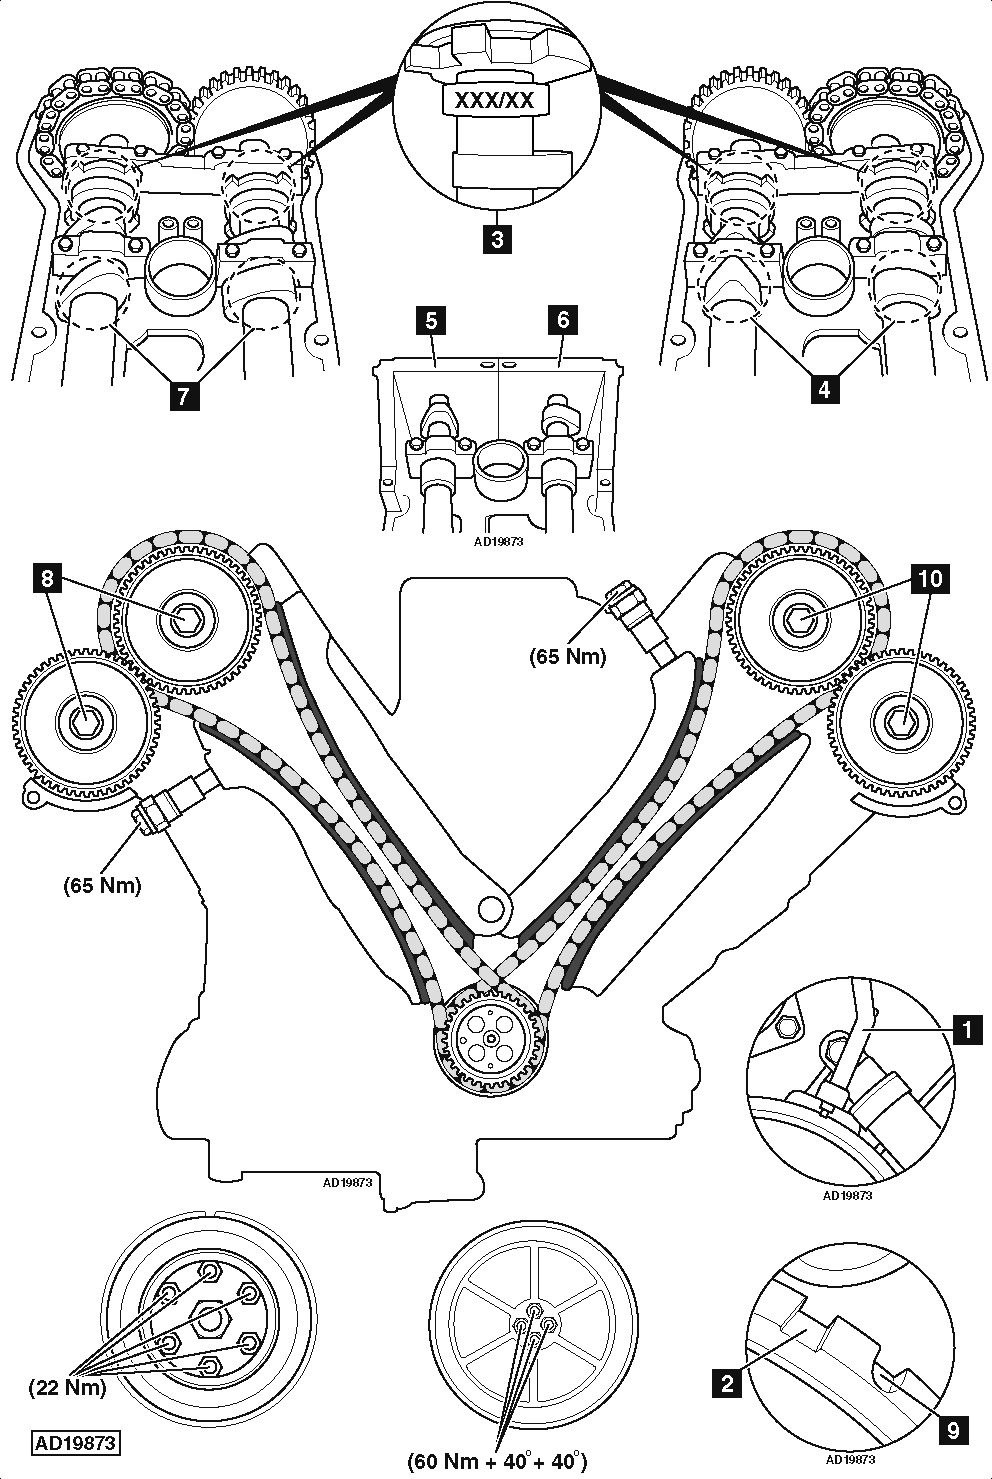 Service manual [2010 Dodge Charger Timing Chain Alignment